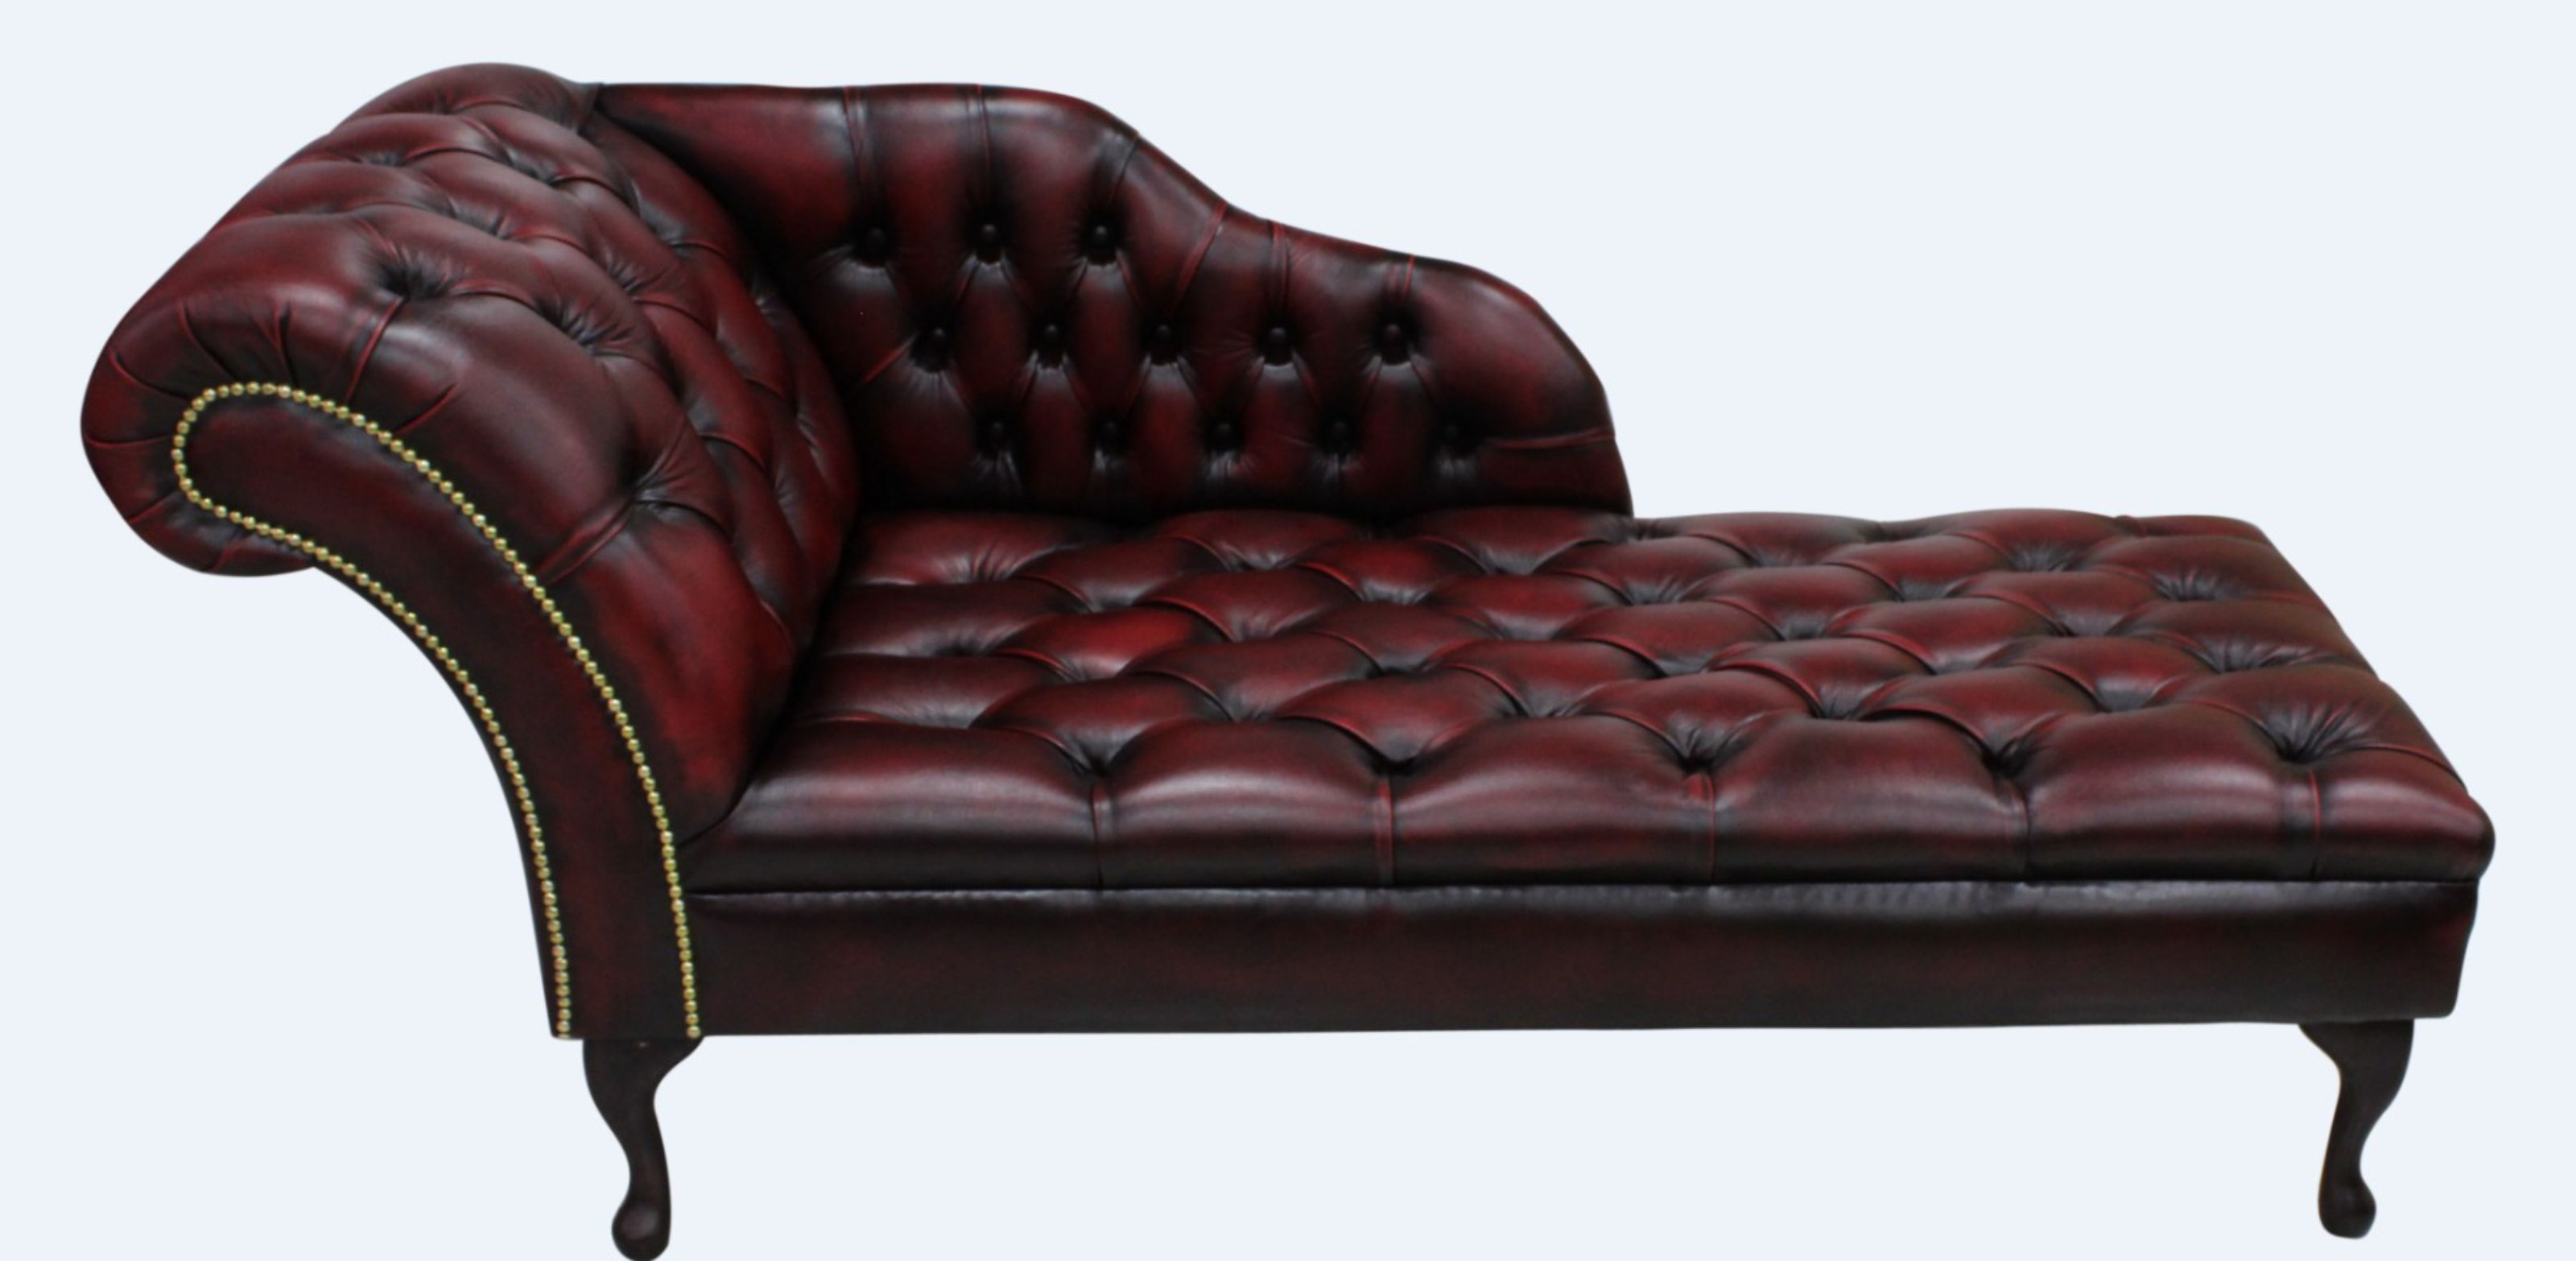 - Chesterfield Leather Chaise Lounge Button Seat Day Bed Antique